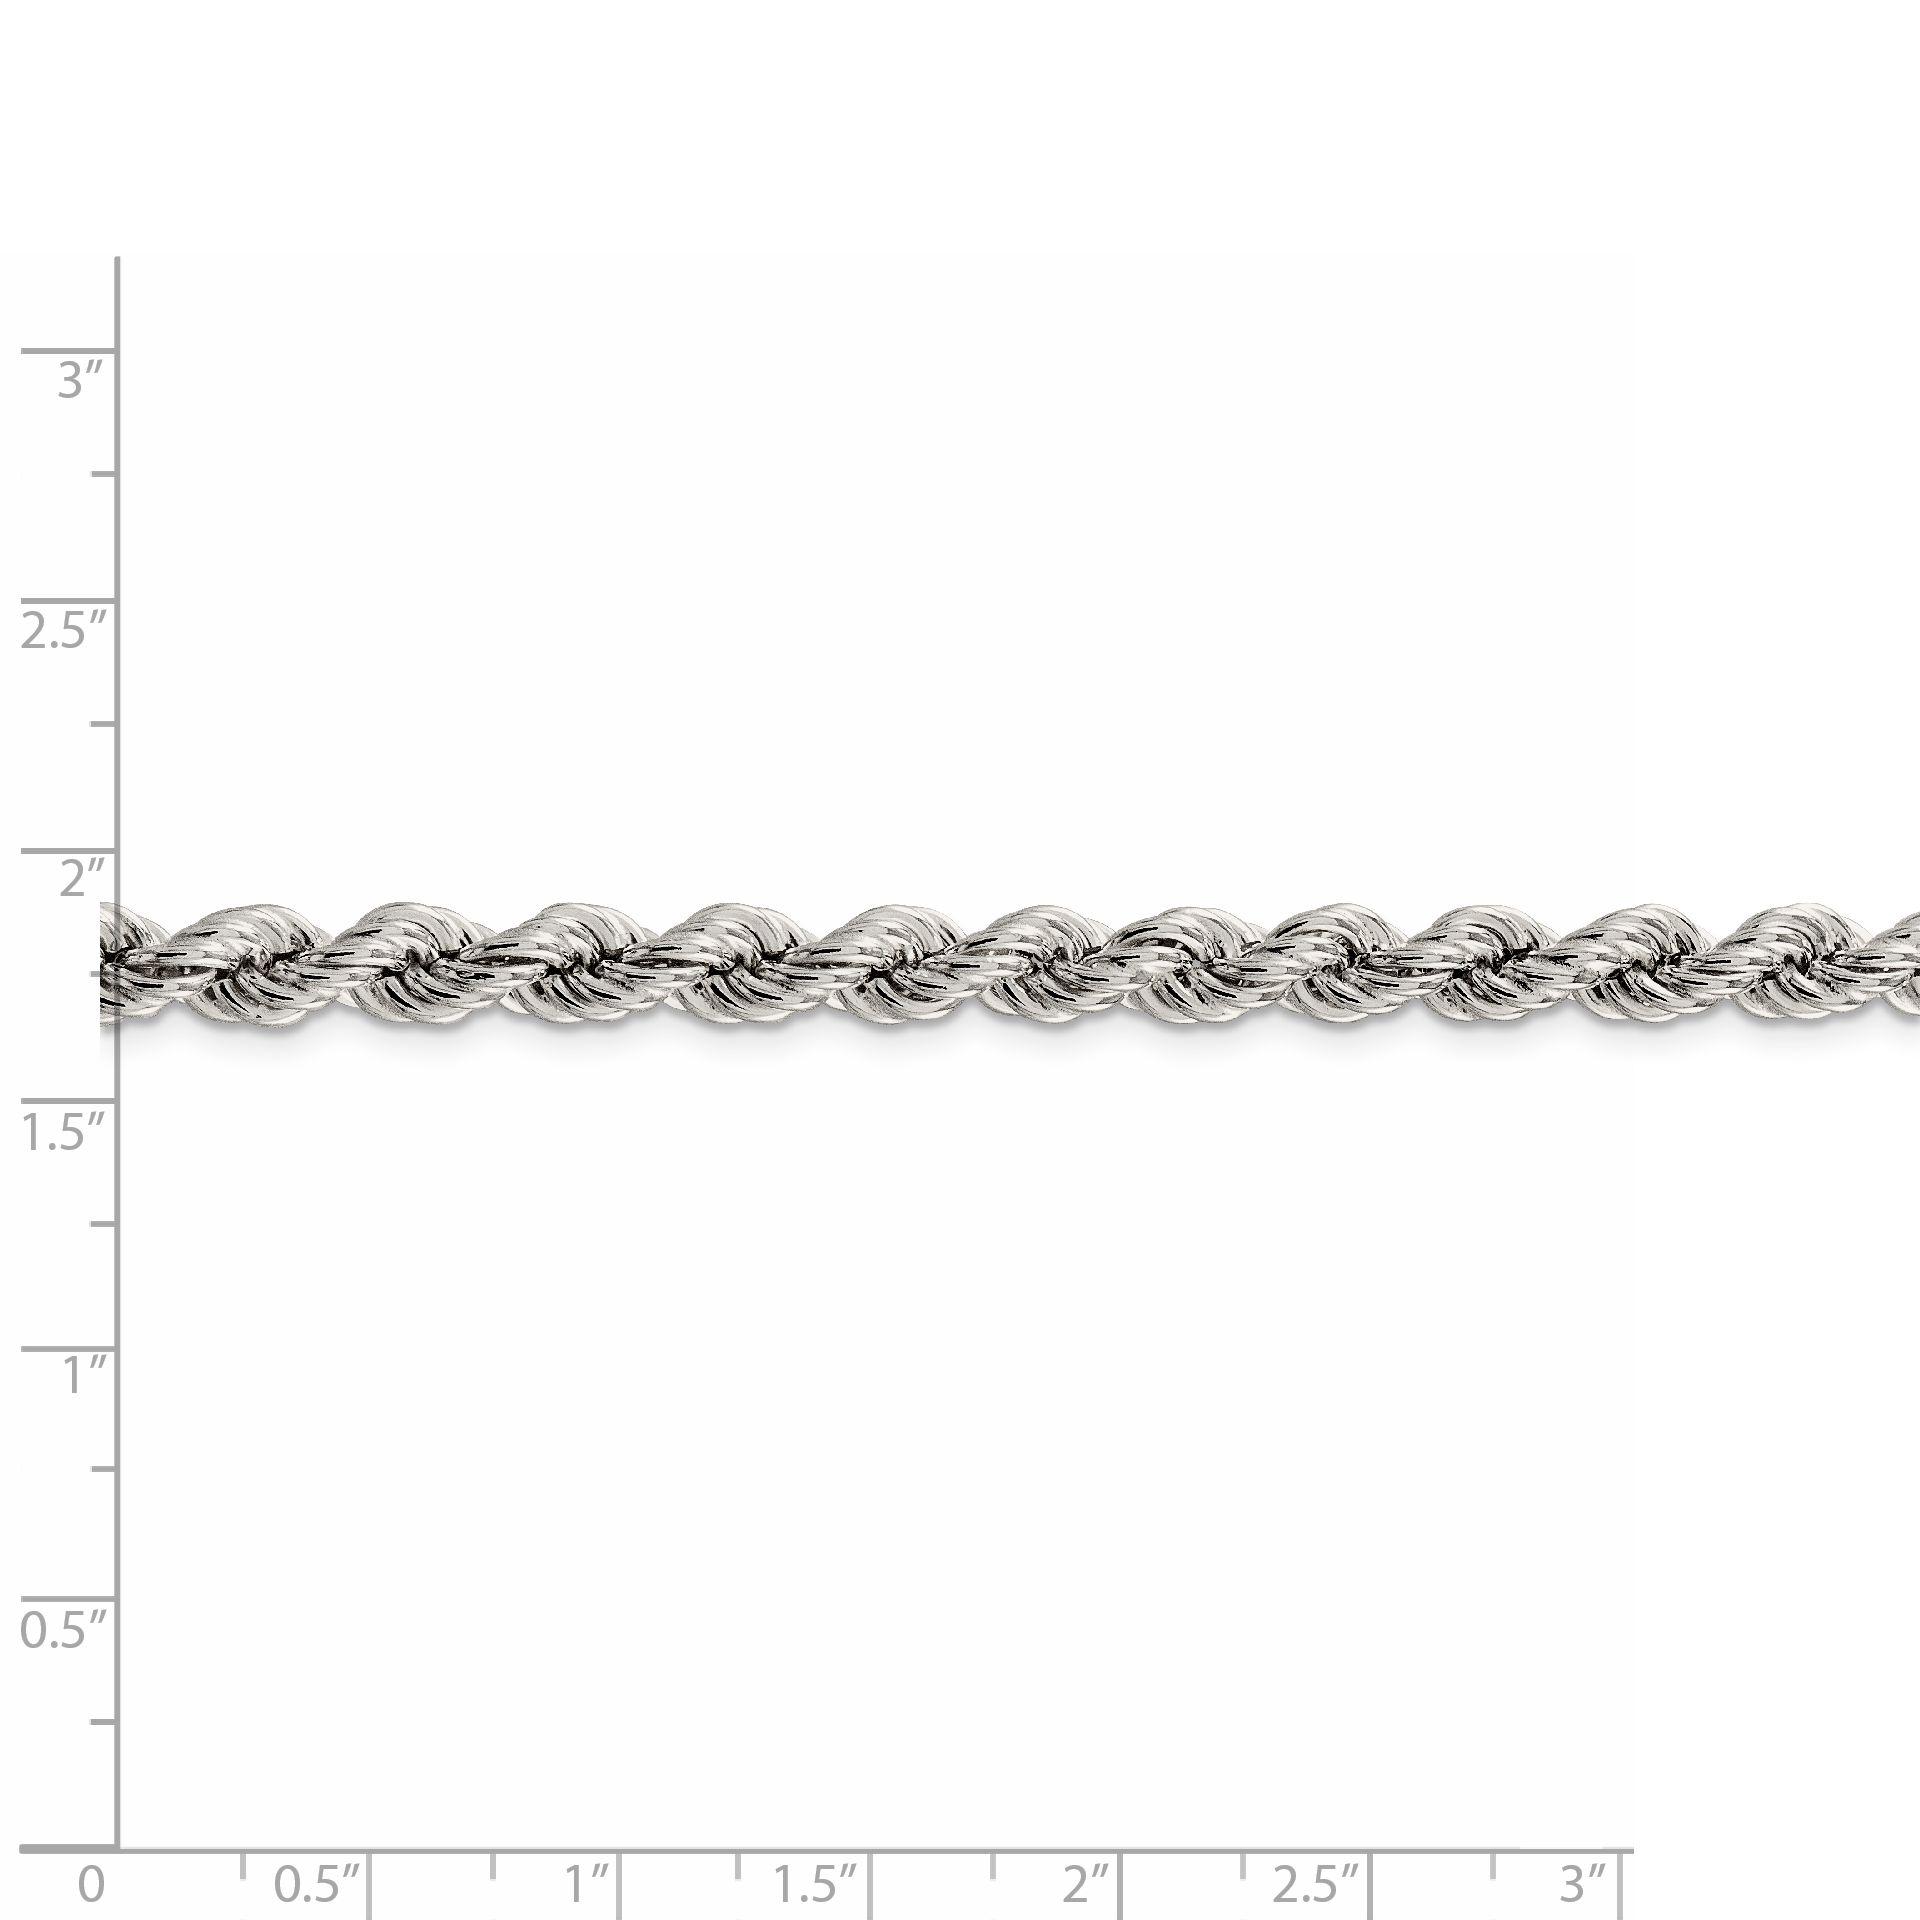 925 Sterling Silver 6.4mm Link Rope Chain Necklace 18 Inch Pendant Charm Fine Jewelry Gifts For Women For Her - image 1 de 5